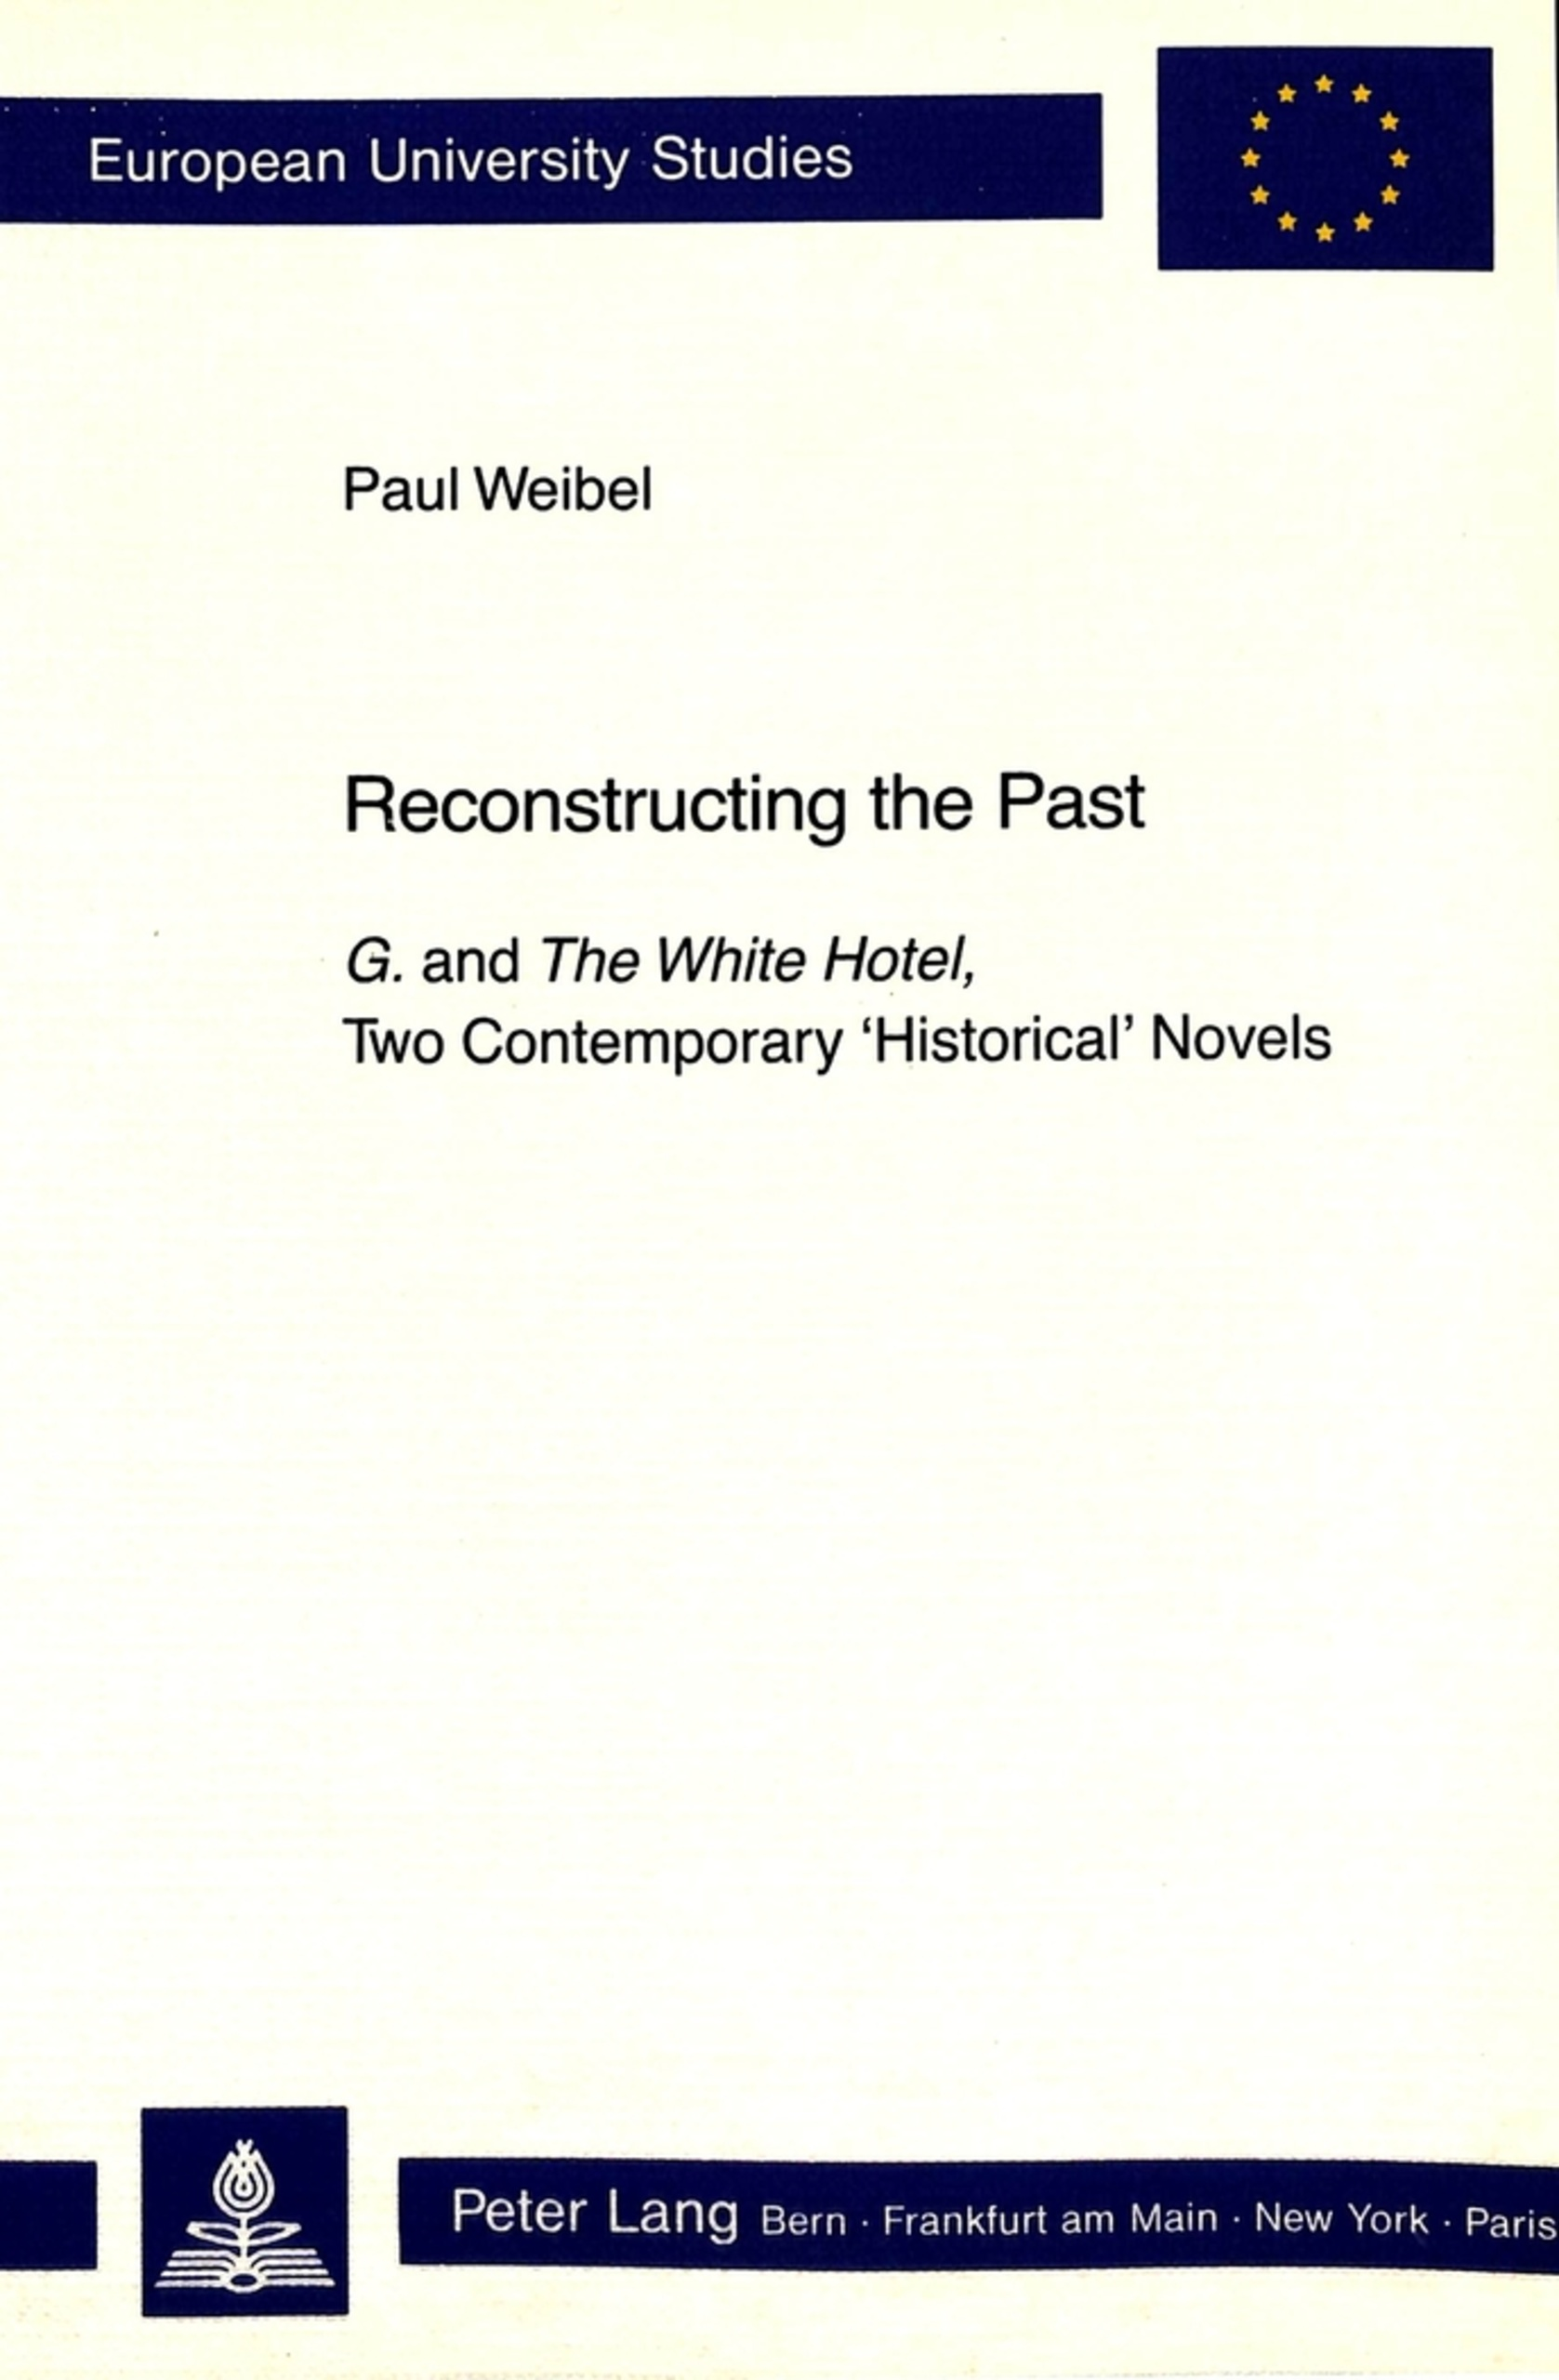 Title: Reconstructing the Past